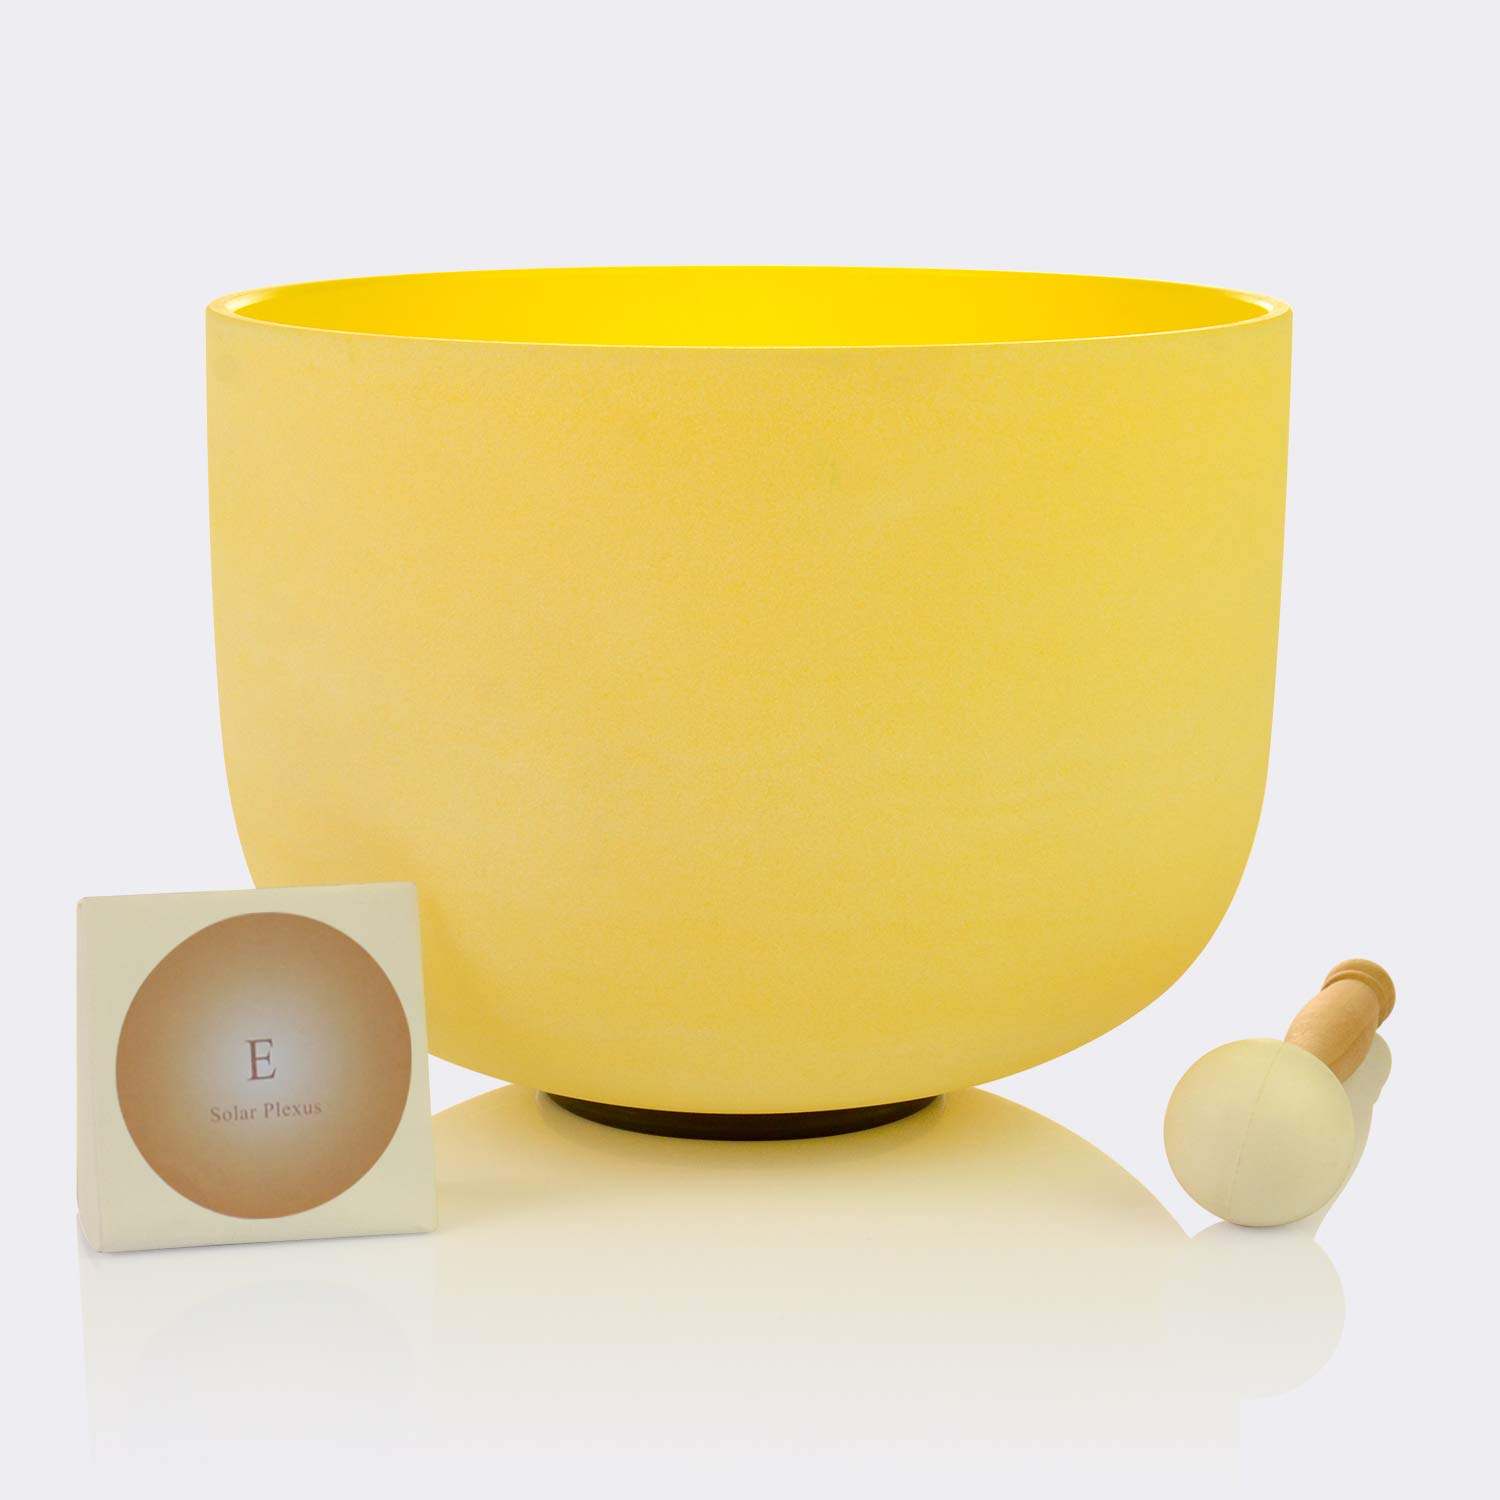 TOPFUND Quartz Crystal Singing Bowl Yellow Color E Note Solar Plexus Chakra 10 inch, O ring and rubber mallet Included